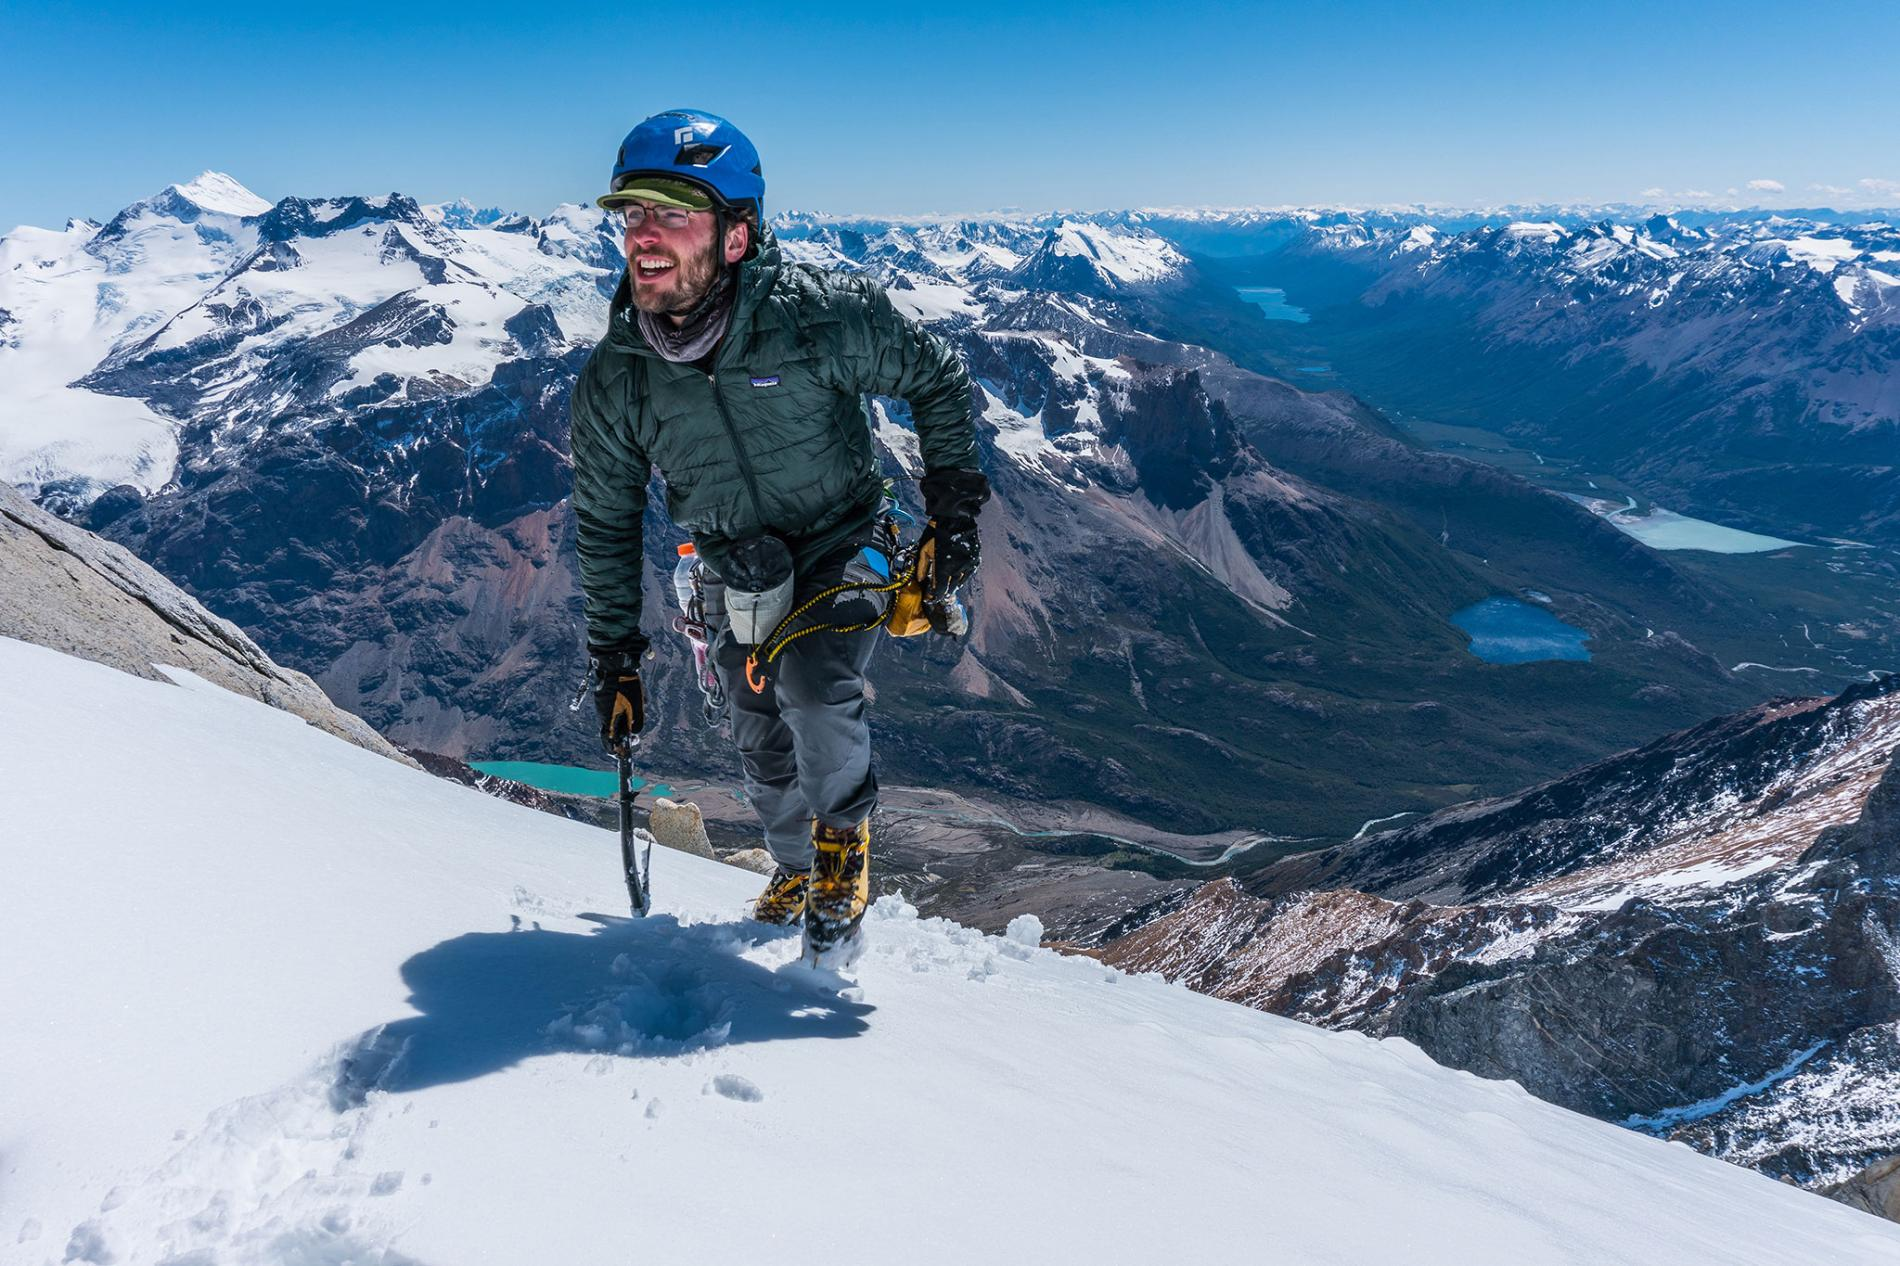 Climber Jim Reynolds achieves epic solo and descent of Fitz 1900x1266